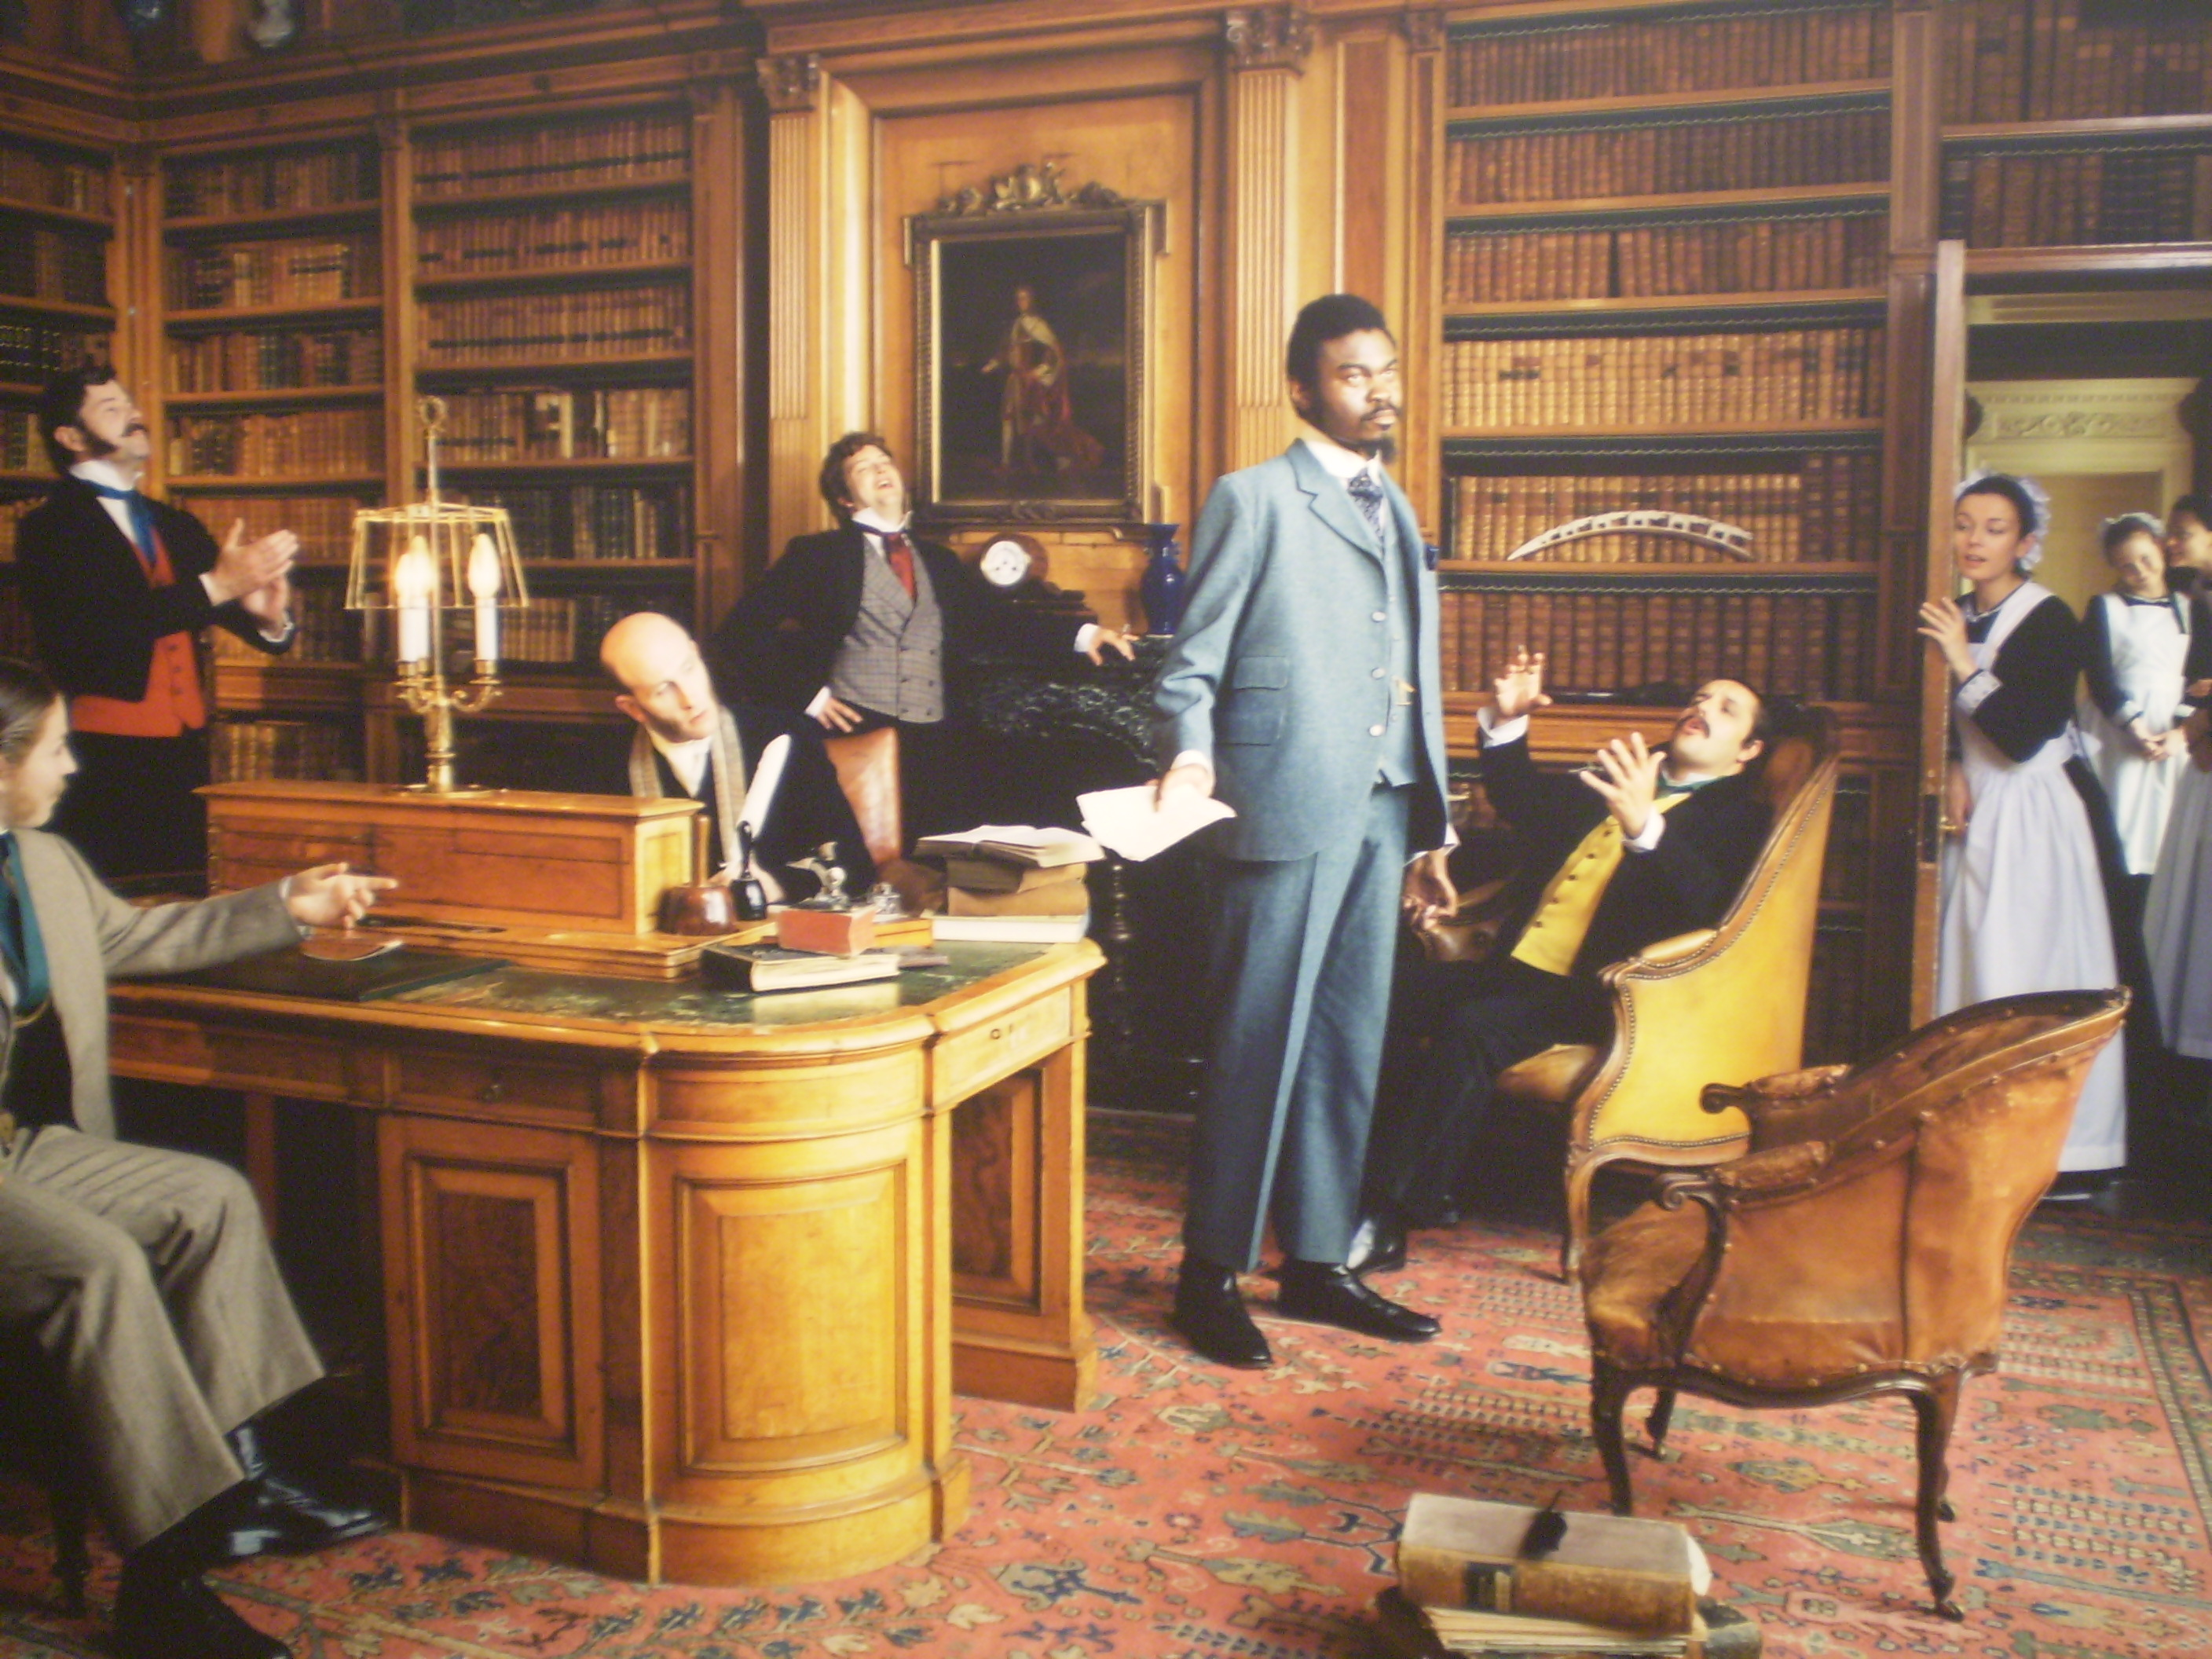 Yinka Shonibare, the artist, in a portrait in Diary of a Victorian Dandy